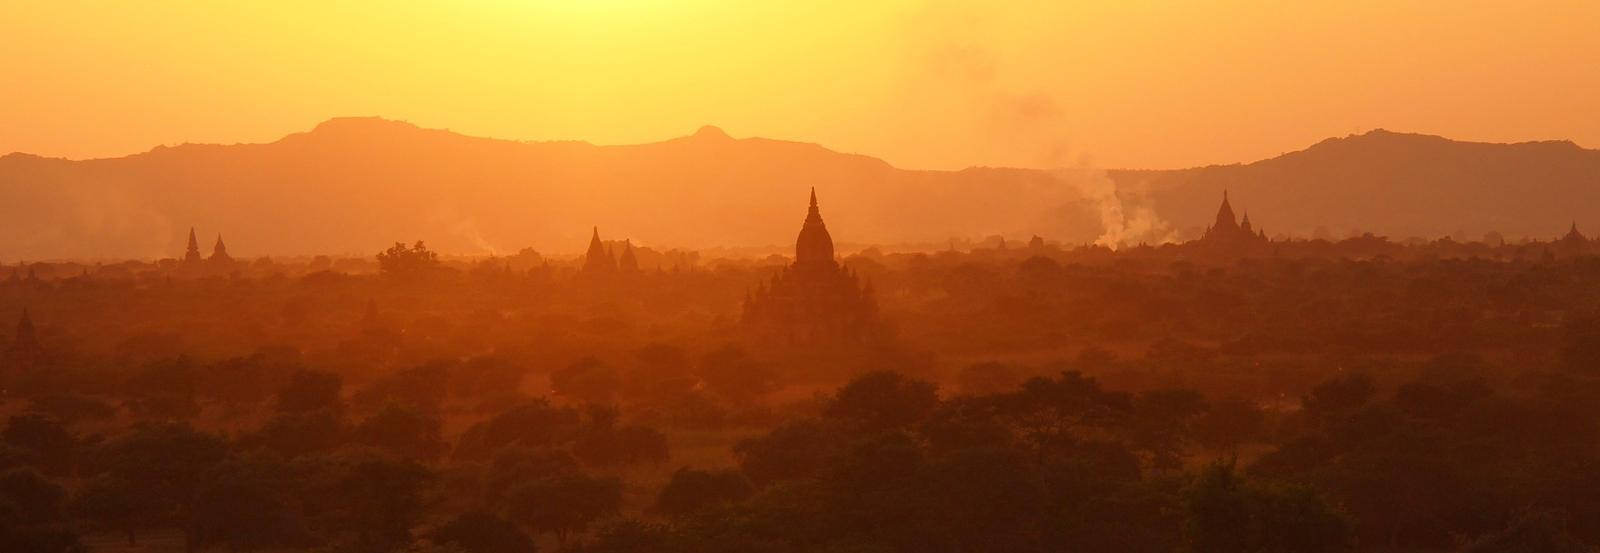 Q&A with Priscilla Clapp on The Future of China-Myanmar Relations